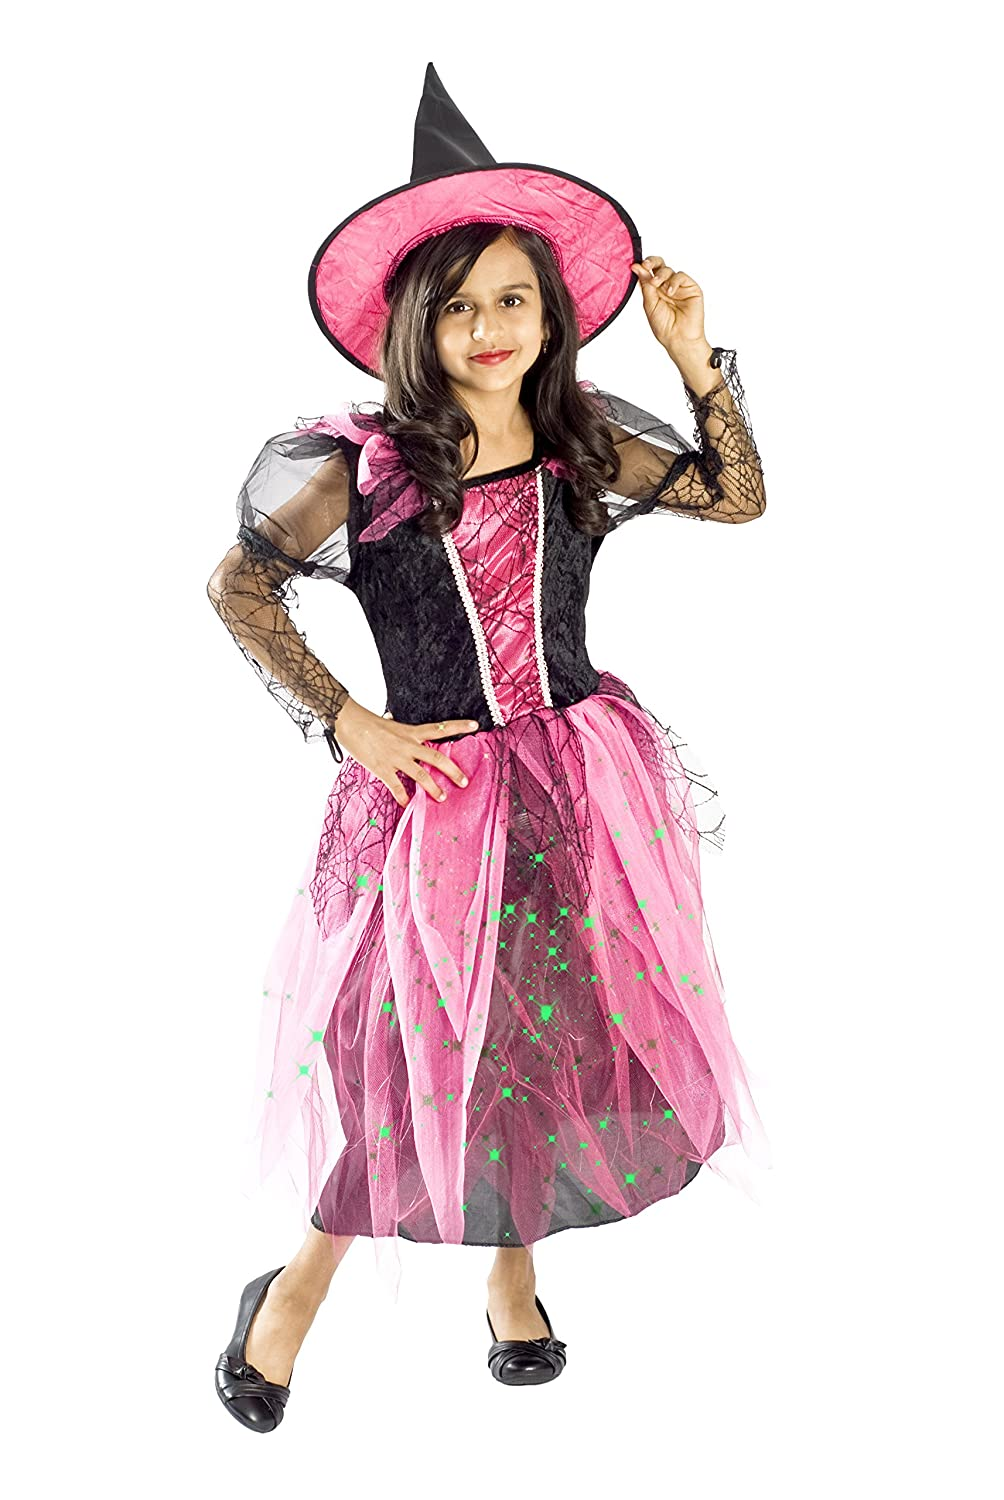 Amazon.com Witch Costume for Girls Black Light up Pink Size Small Medium Large 4-6 6-8 8-10L (8-10) Toys u0026 Games  sc 1 st  Amazon.com & Amazon.com: Witch Costume for Girls Black Light up Pink Size Small ...